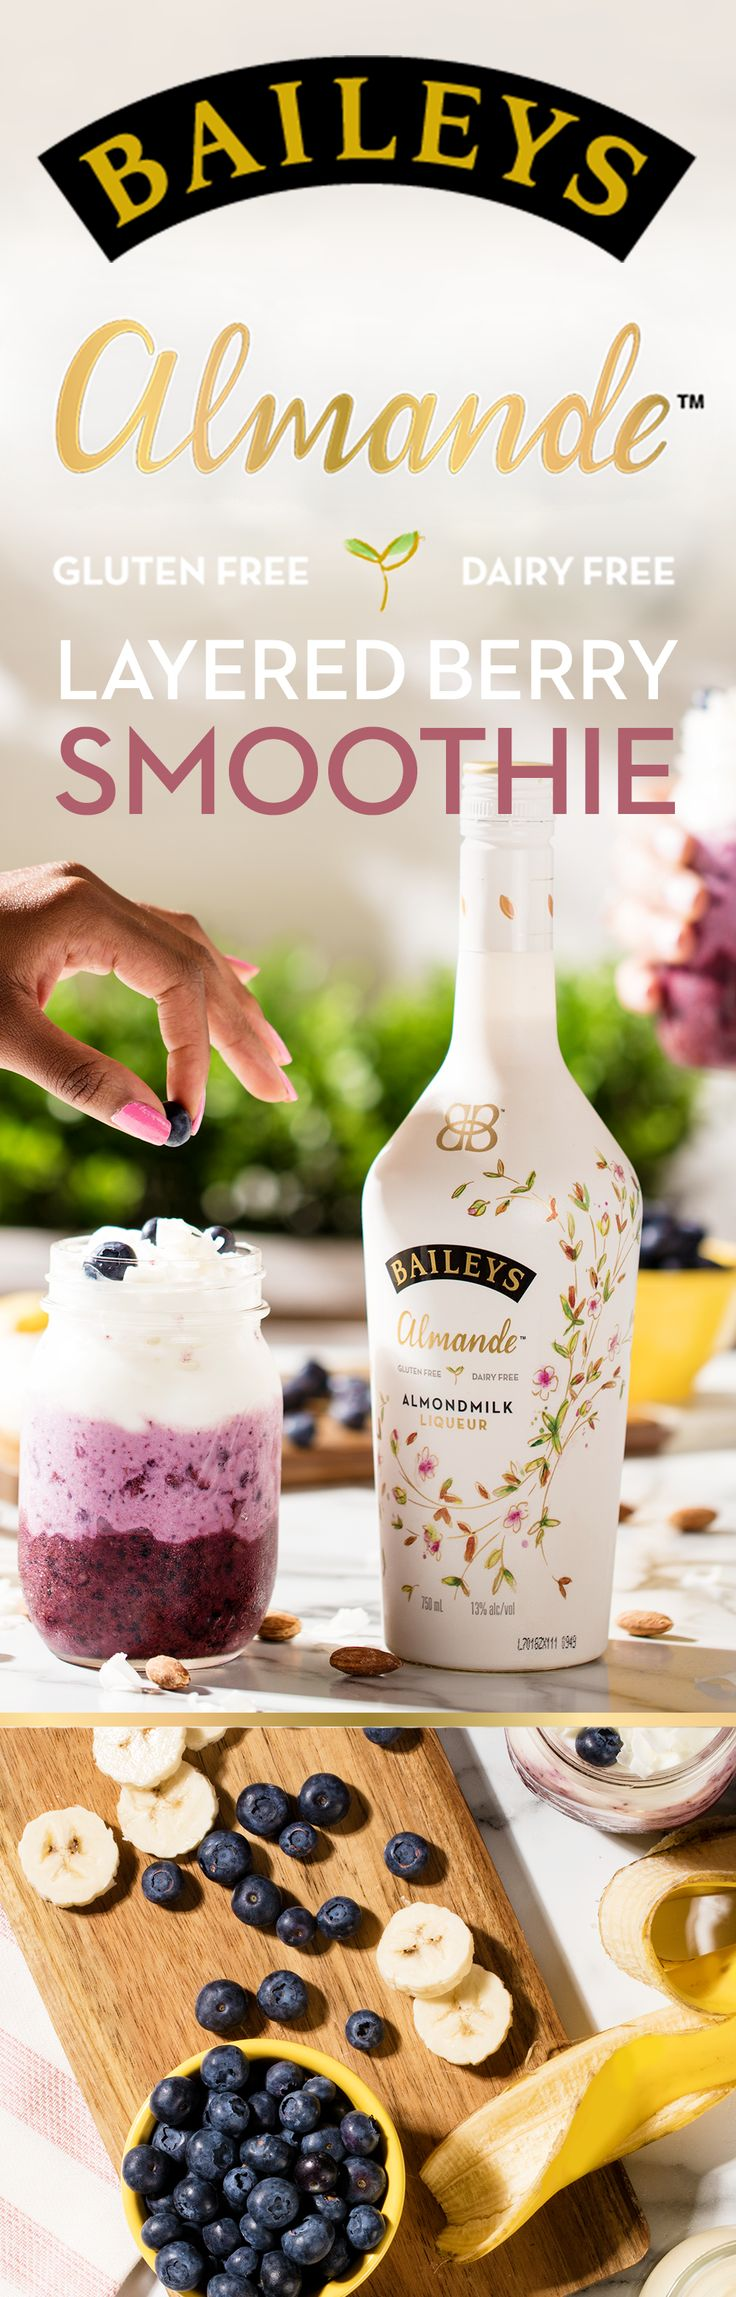 Take a summer staycation with the triple layered berry smoothie, made with our dairy free, gluten free, and vegan almondmilk liqueur. Bottom layer: blend 1.5 oz. Baileys Almande, 1/2 cup dairy free greek yogurt, and 1 cup frozen blueberries. Middle layer: https://tumblr.com/ZWjKhc2QAtidb